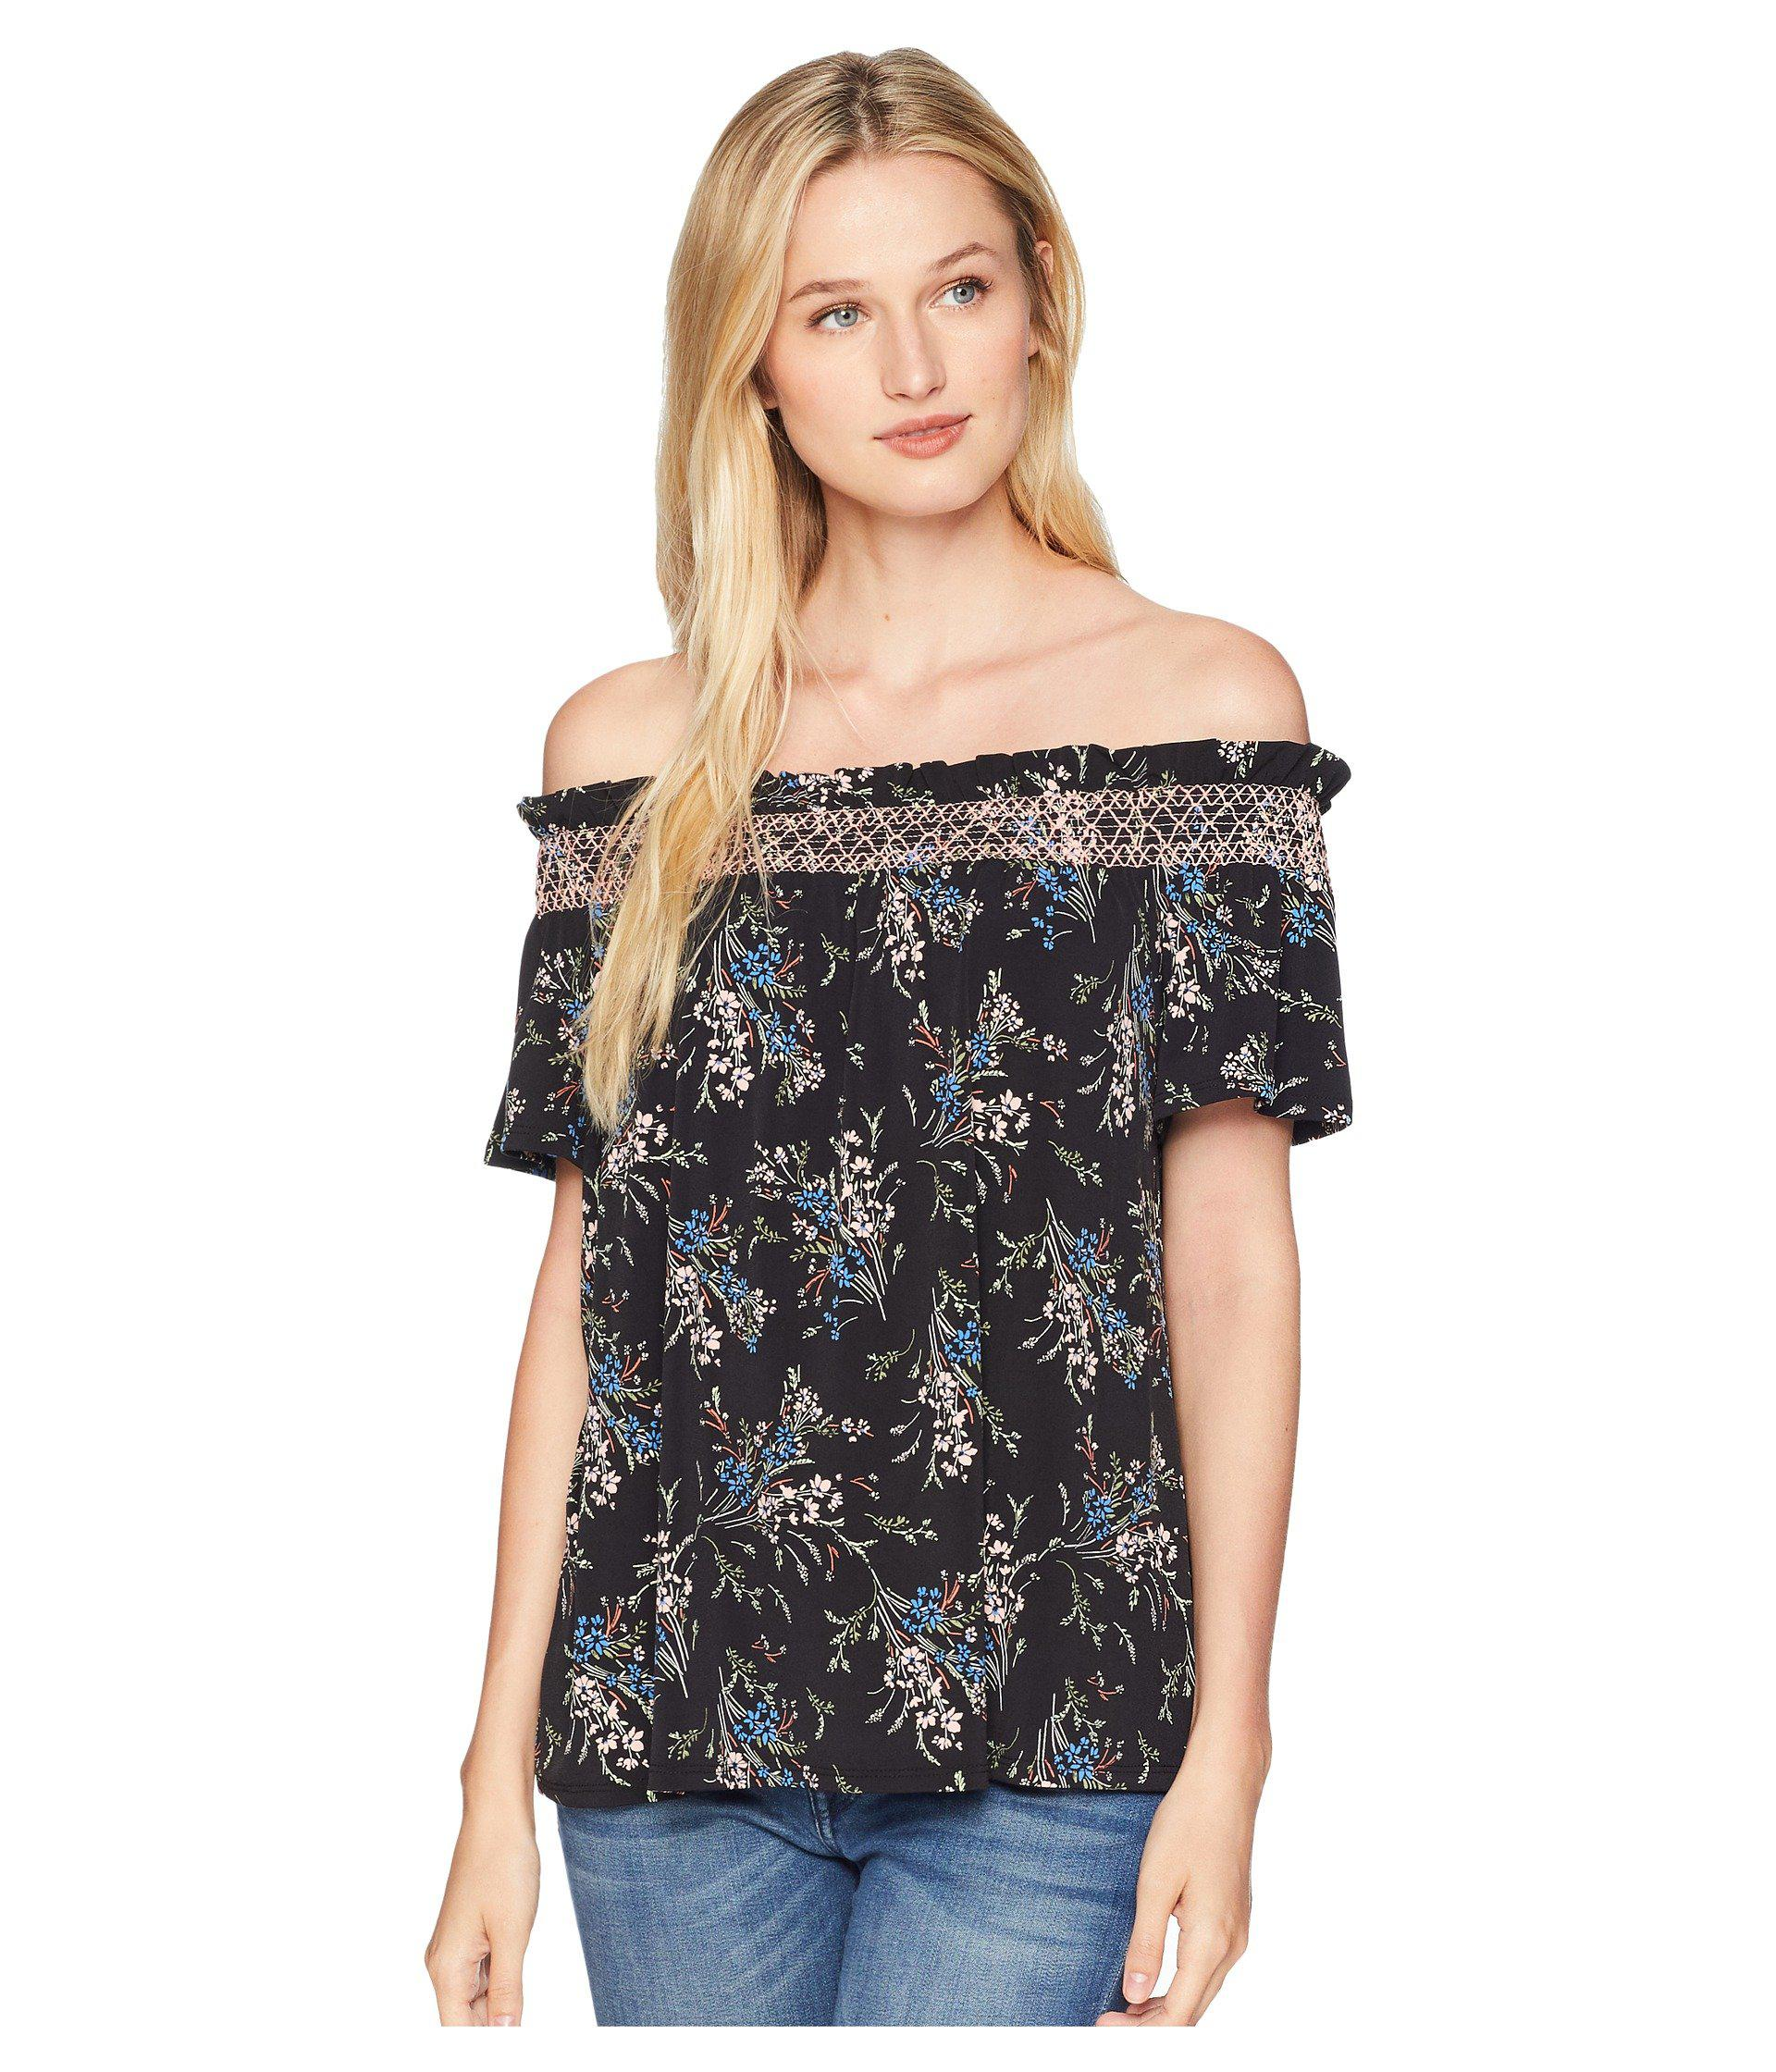 bf28adcfa6c483 Lyst - Cece Off The Shoulder Dancing Bouquets Top in Black - Save 64%